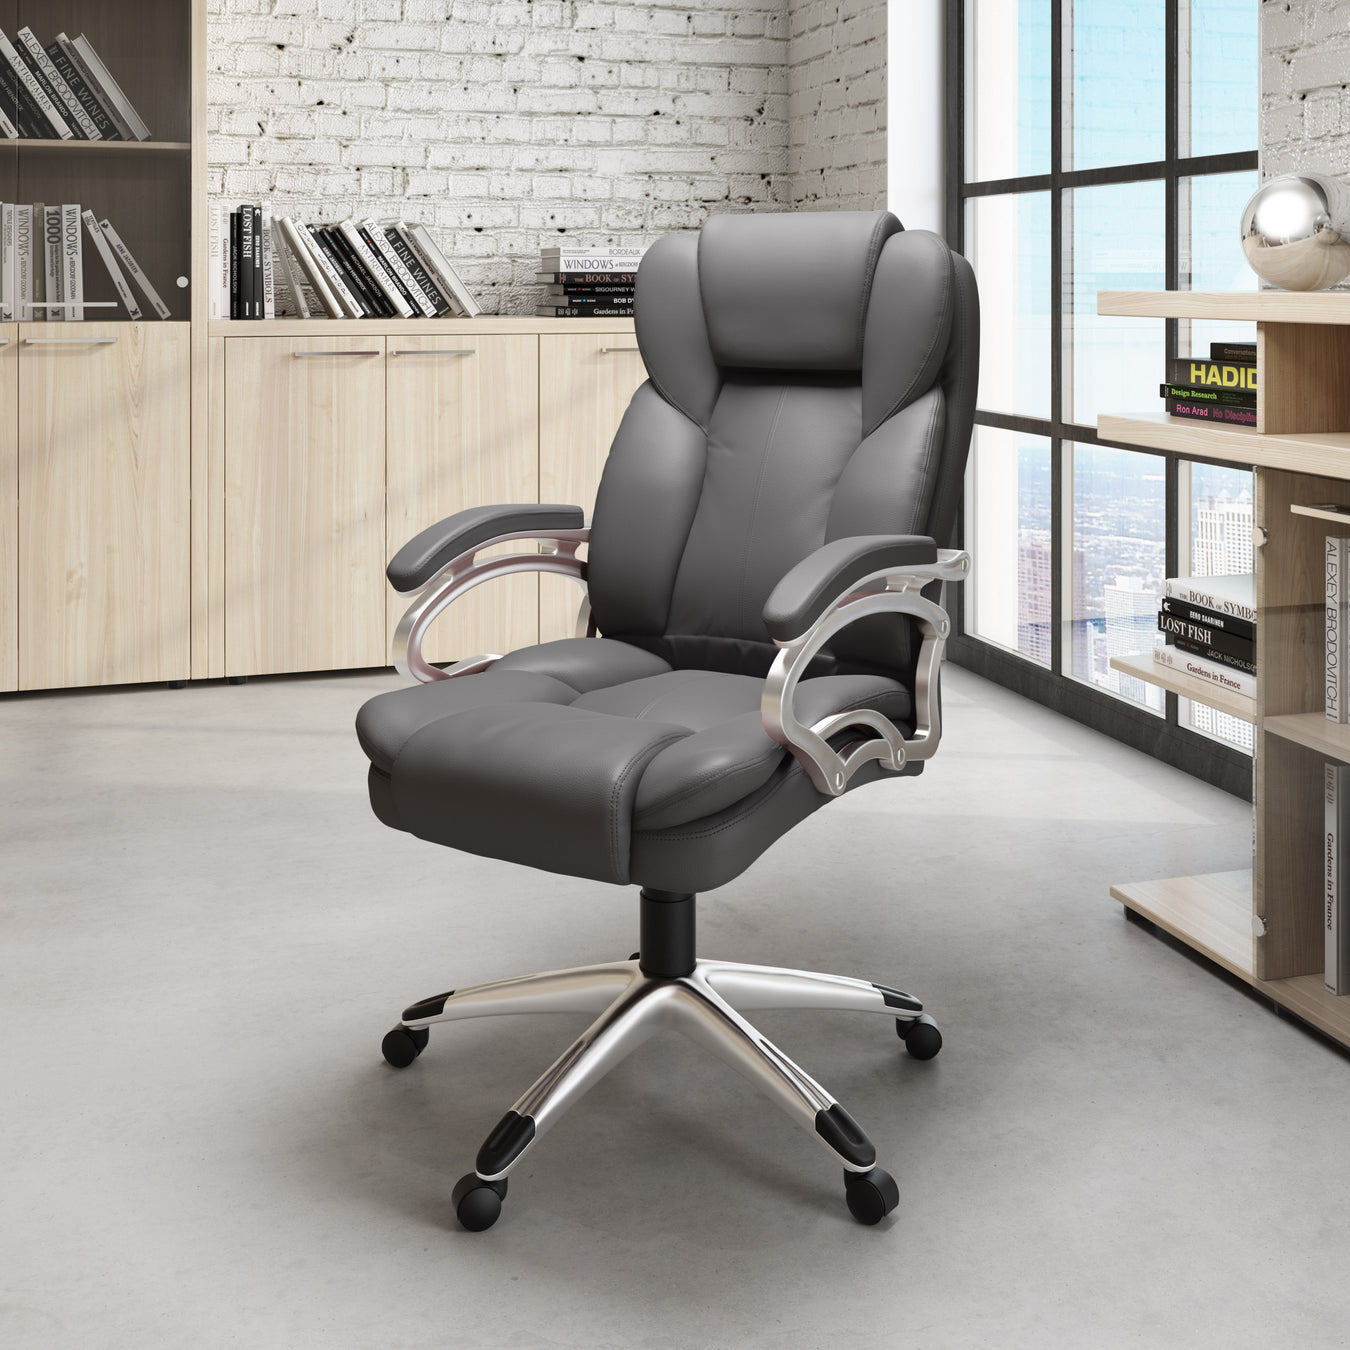 Office and workspace chairs